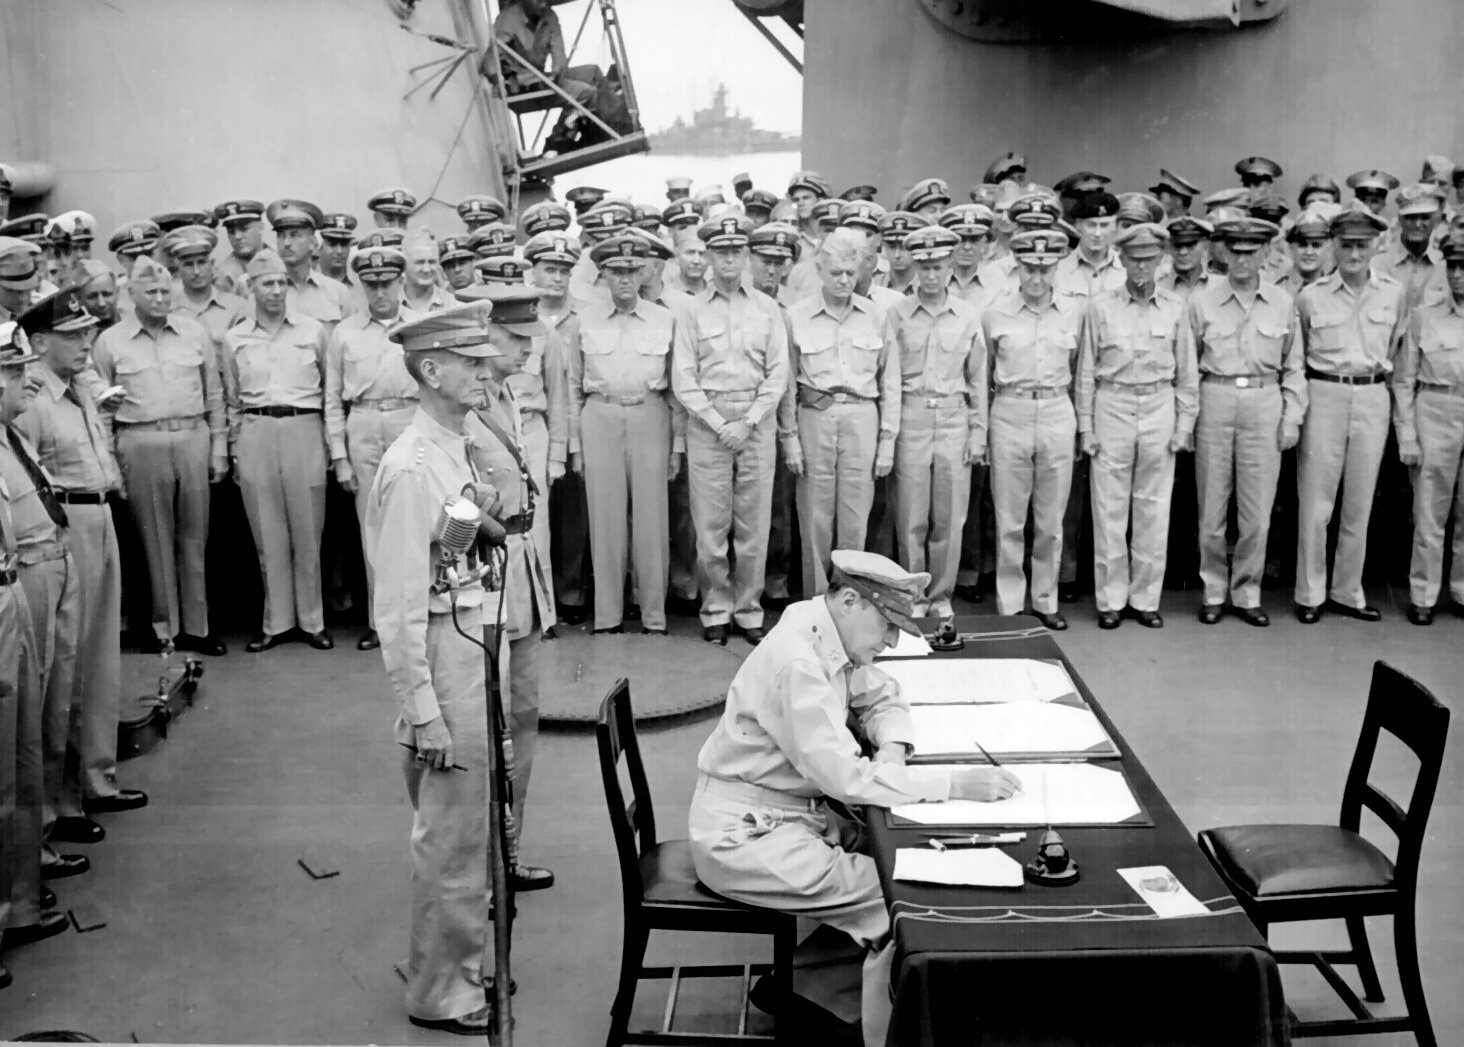 Douglas MacArthur signs formal surrender - (VIDEO) 'Mighty Mo' USS Missouri's decorated history over 50 years as US' 'mightiest battleship'